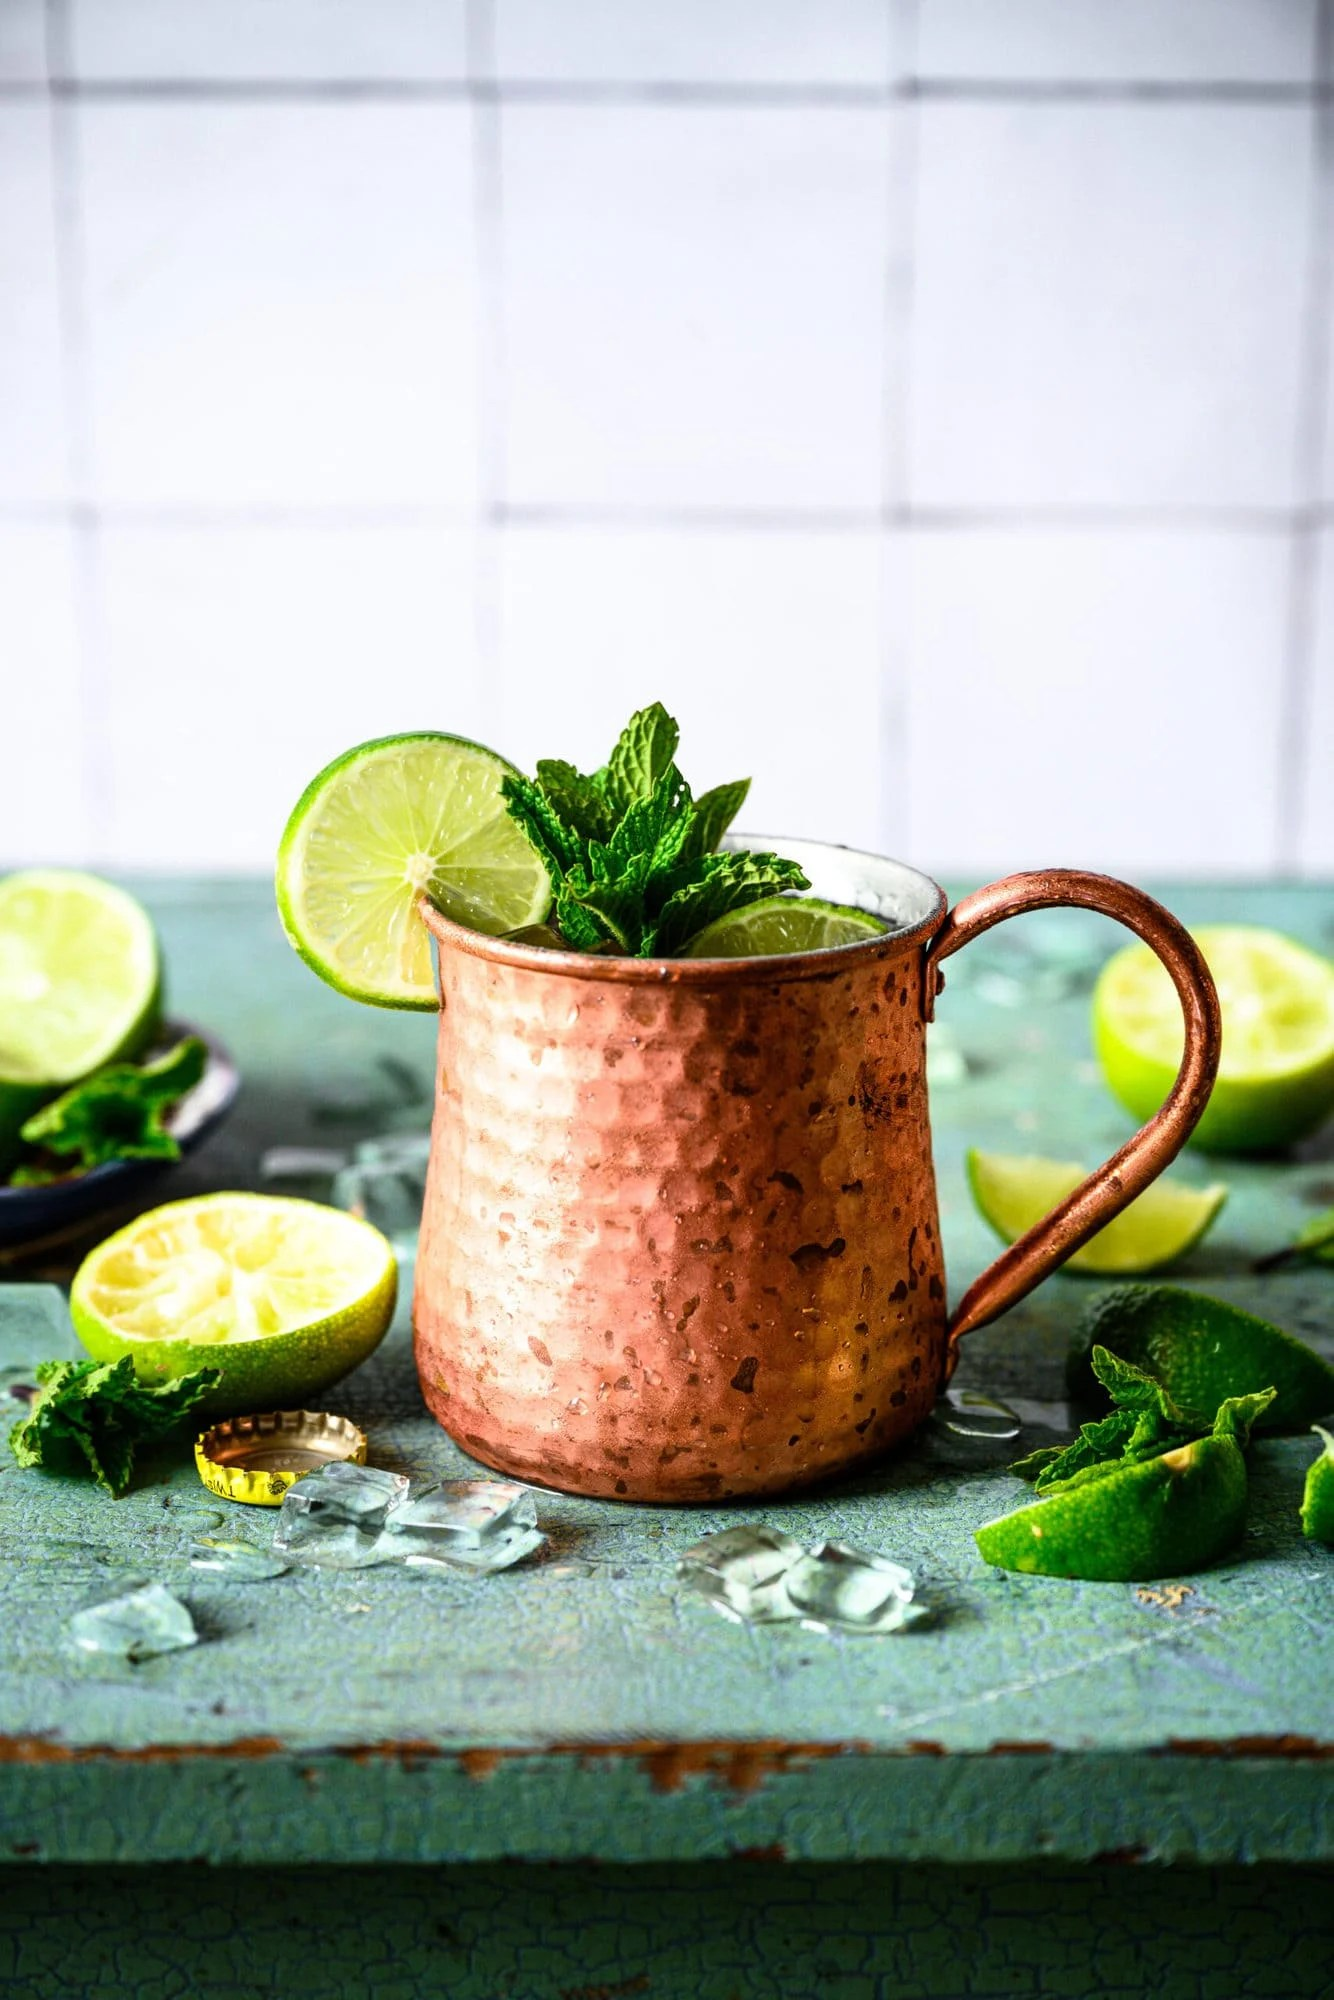 One tequila mule cocktail in copper mug with lime and mint garnish on antique blue table.